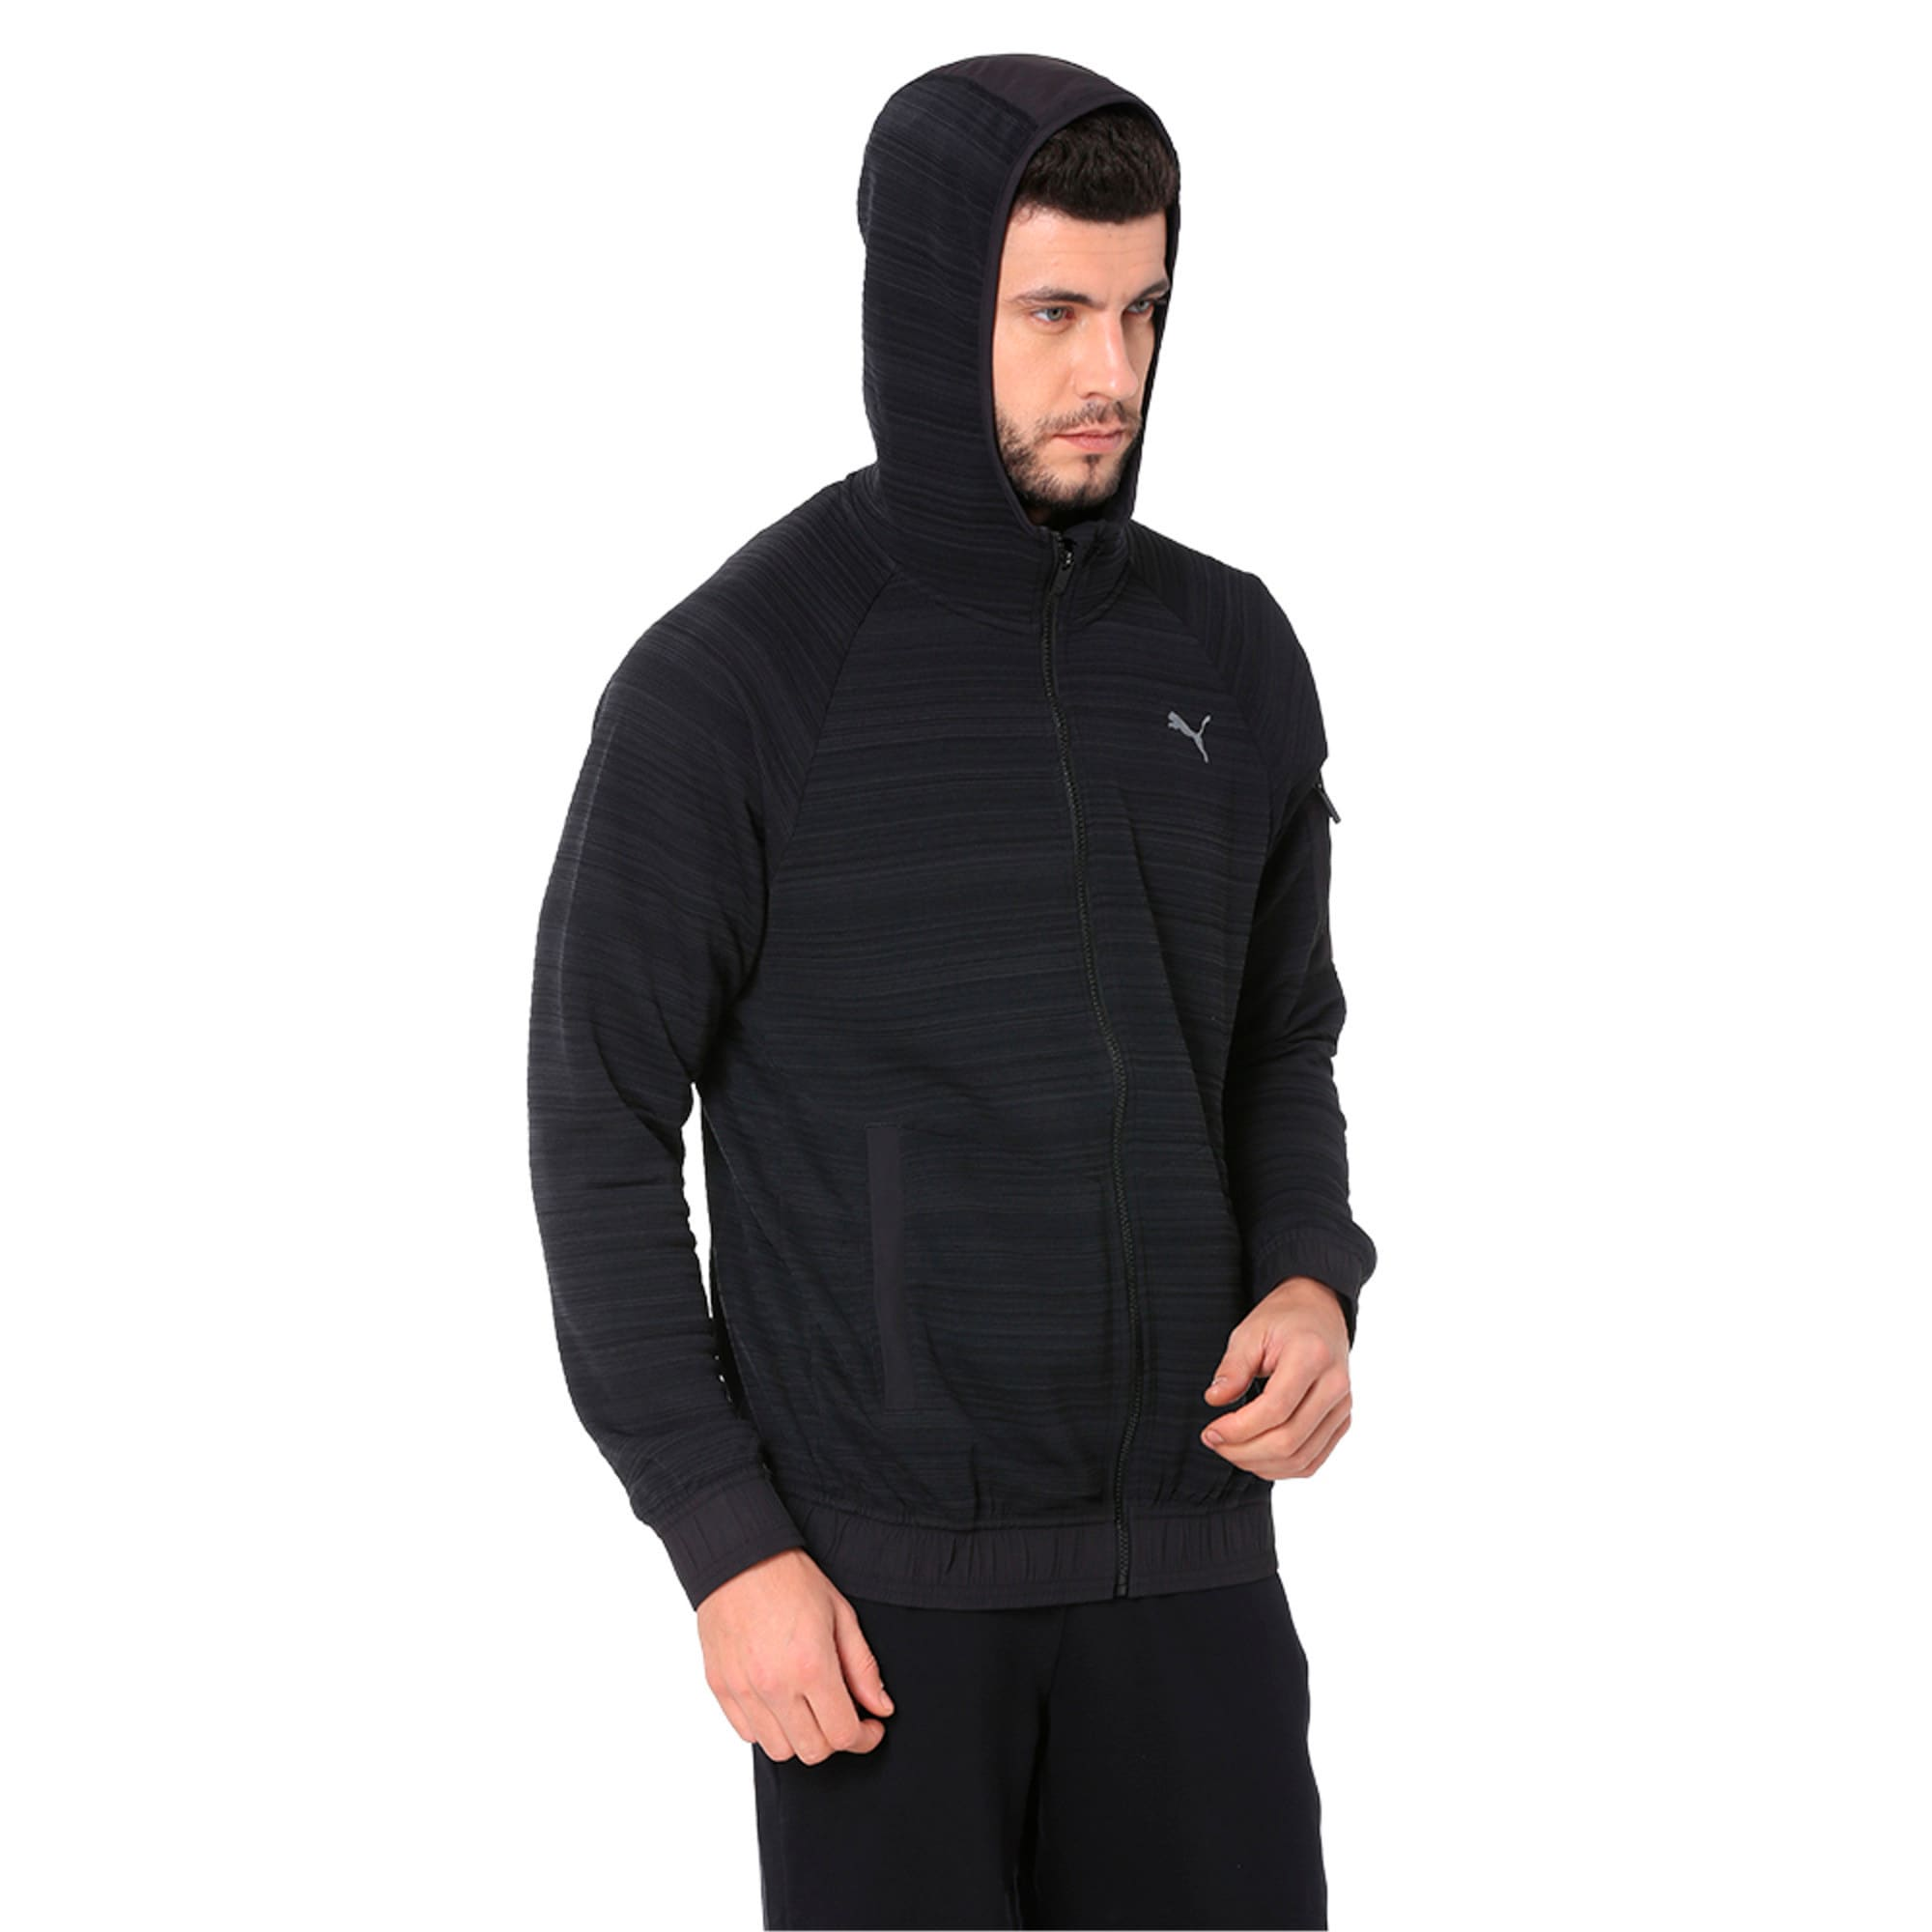 Thumbnail 3 of Energy Men's Full Zip Hoodie, Puma Black Heather, medium-IND